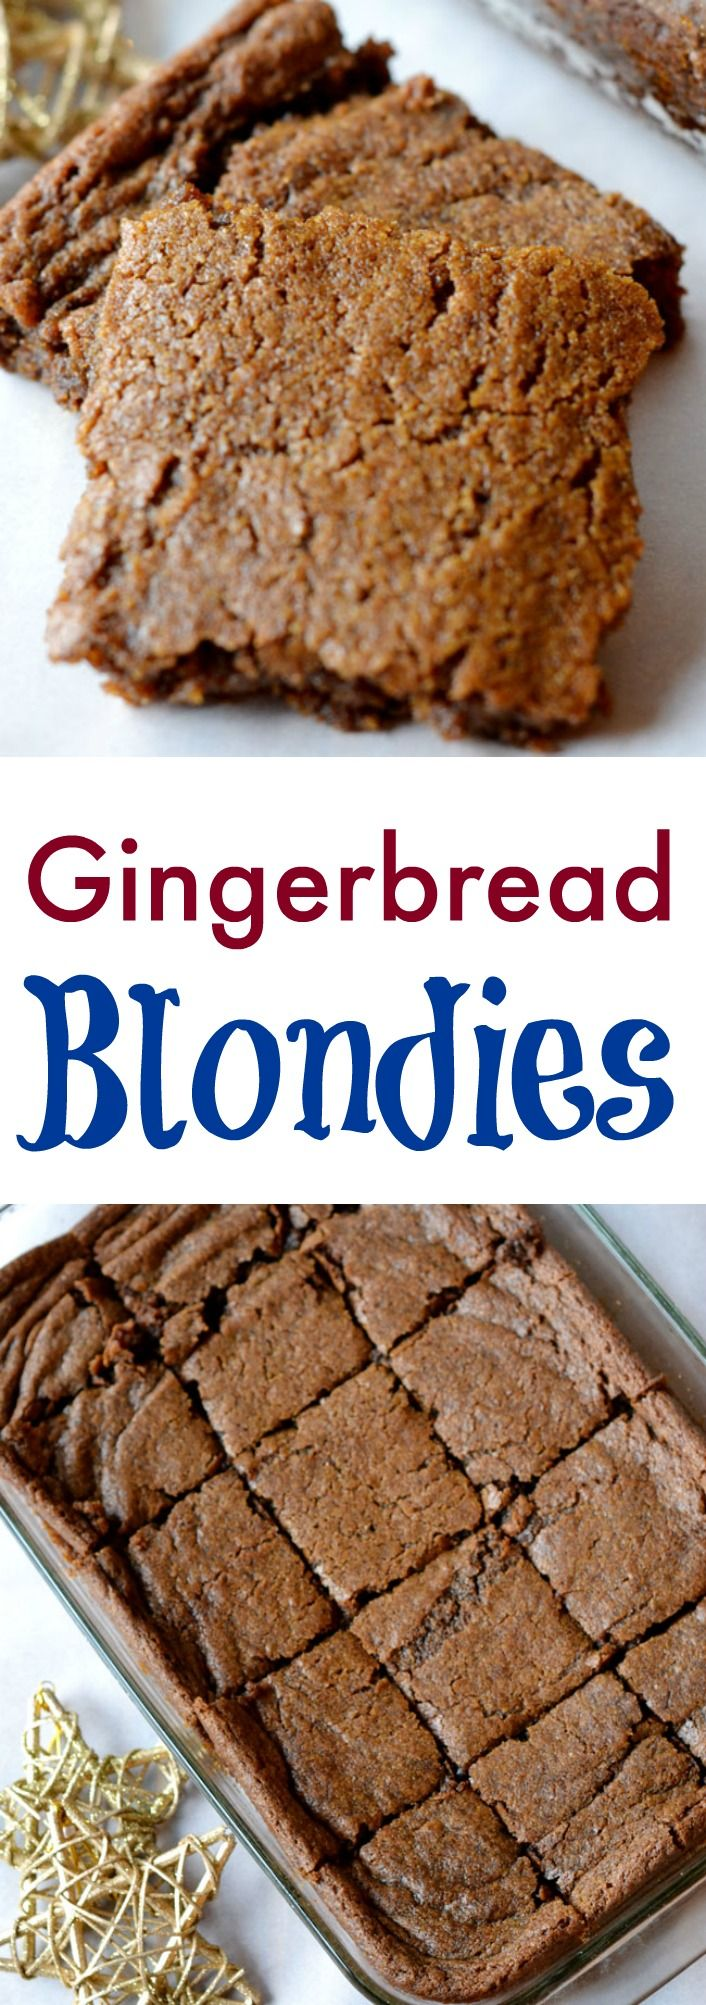 Gingerbread blondies a quick and easy christmas dessert recipe. These are so yummy and perfect for a holiday party. Love this easy christmas dessert.